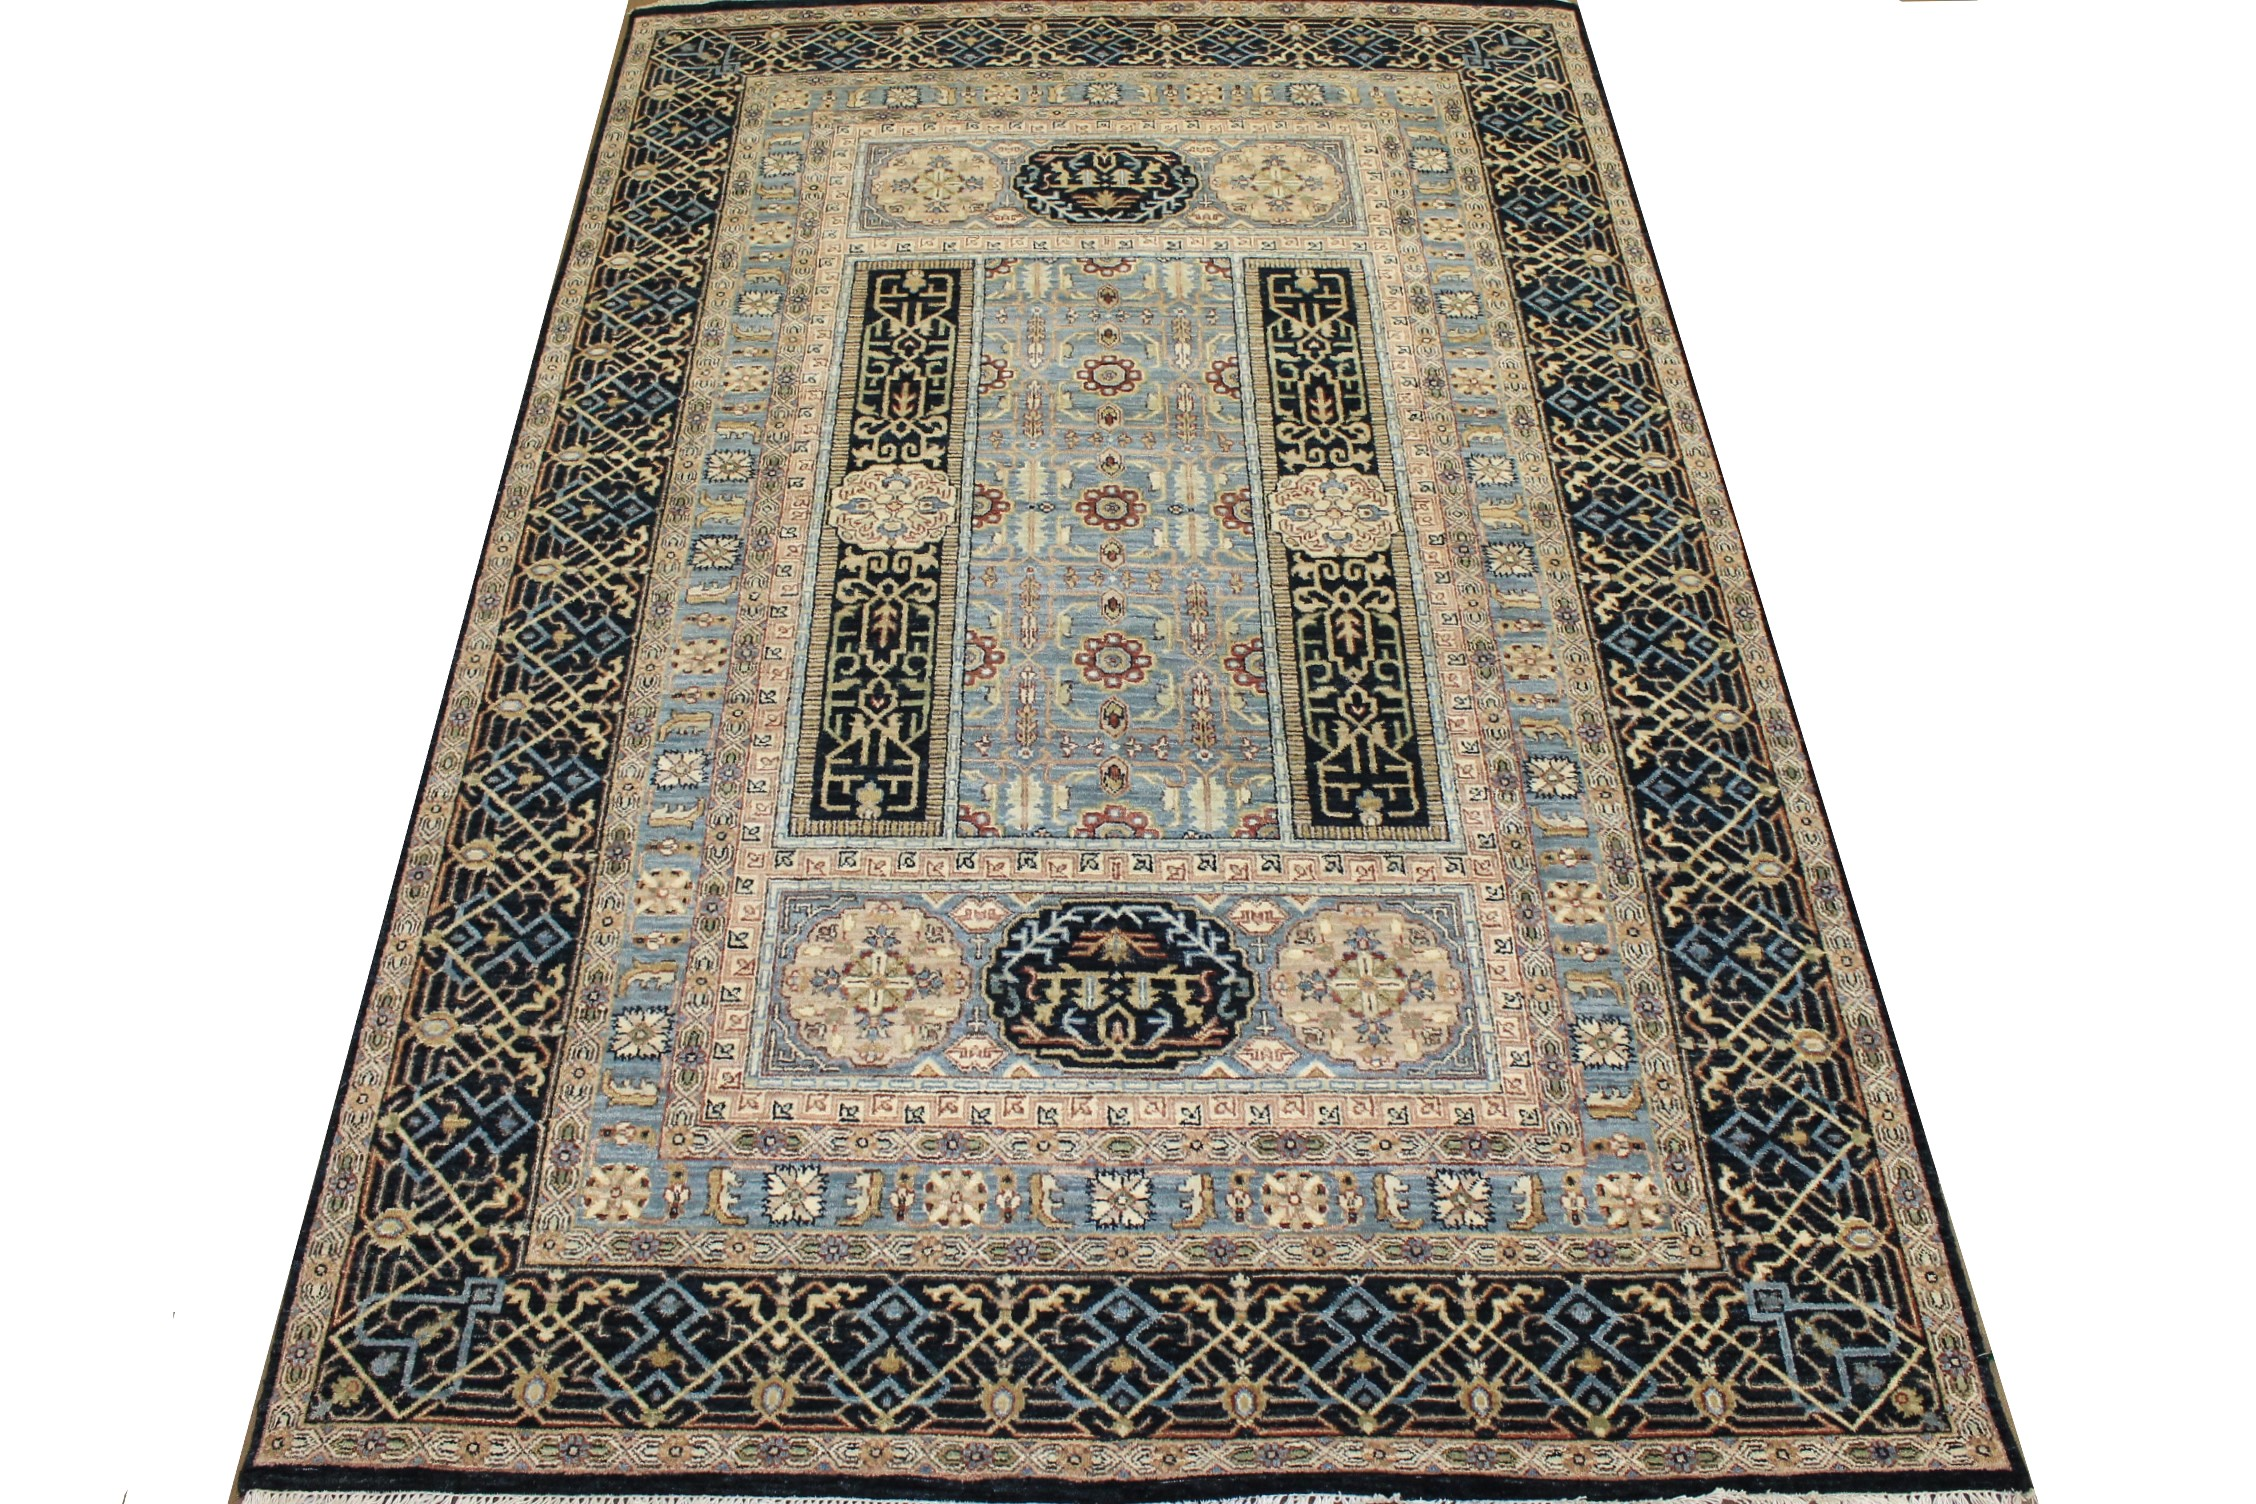 6x9 Traditional Hand Knotted Wool Area Rug - MR024863